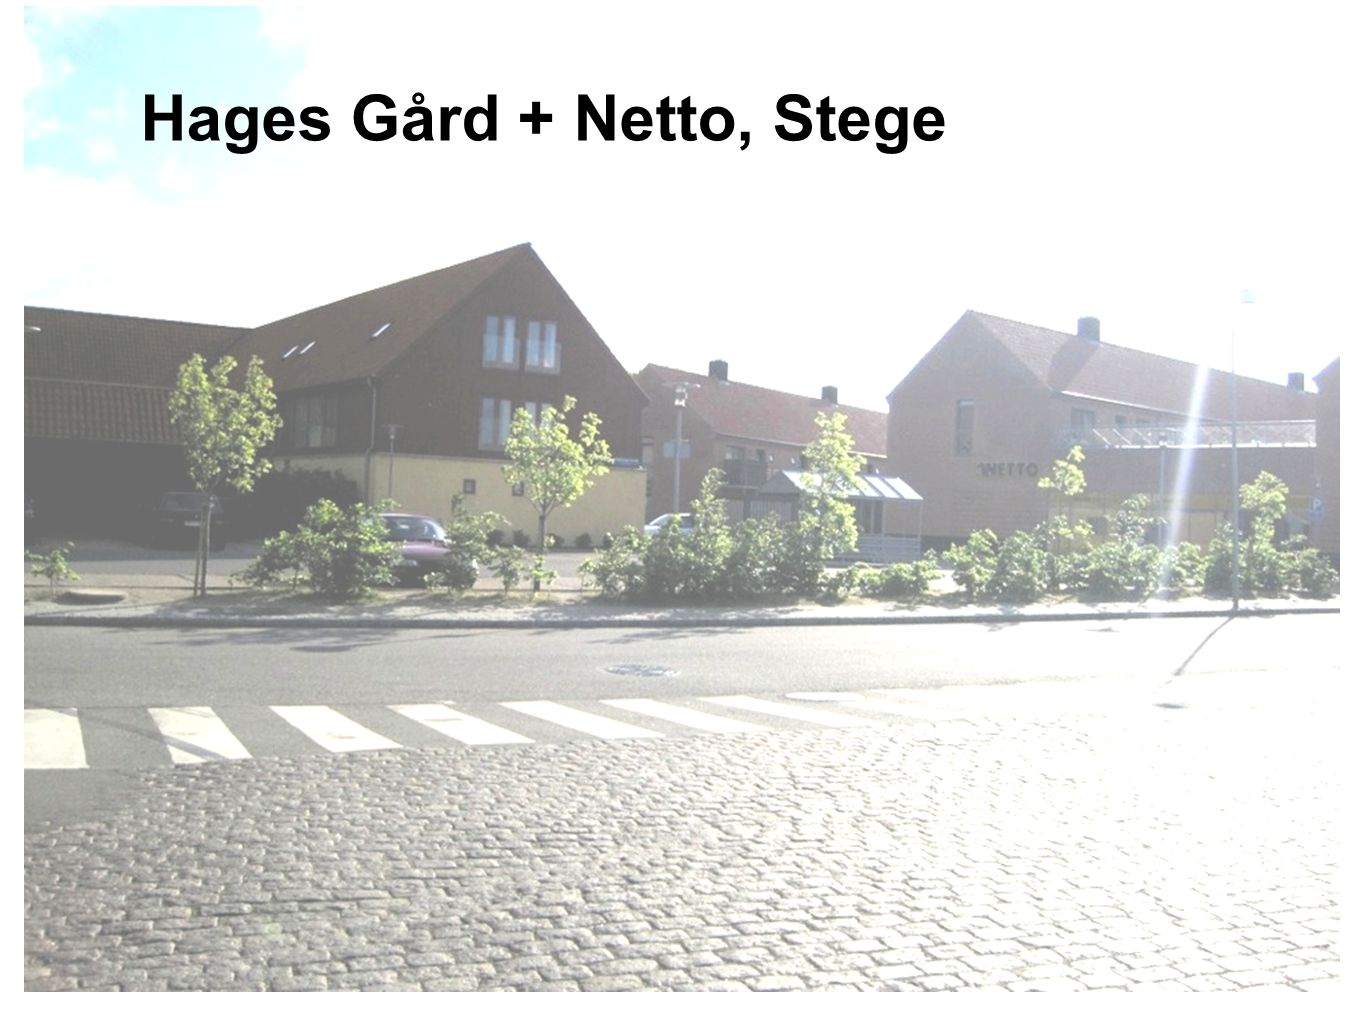 Ex Hages Gård / Netto Hages Gård + Netto, Stege